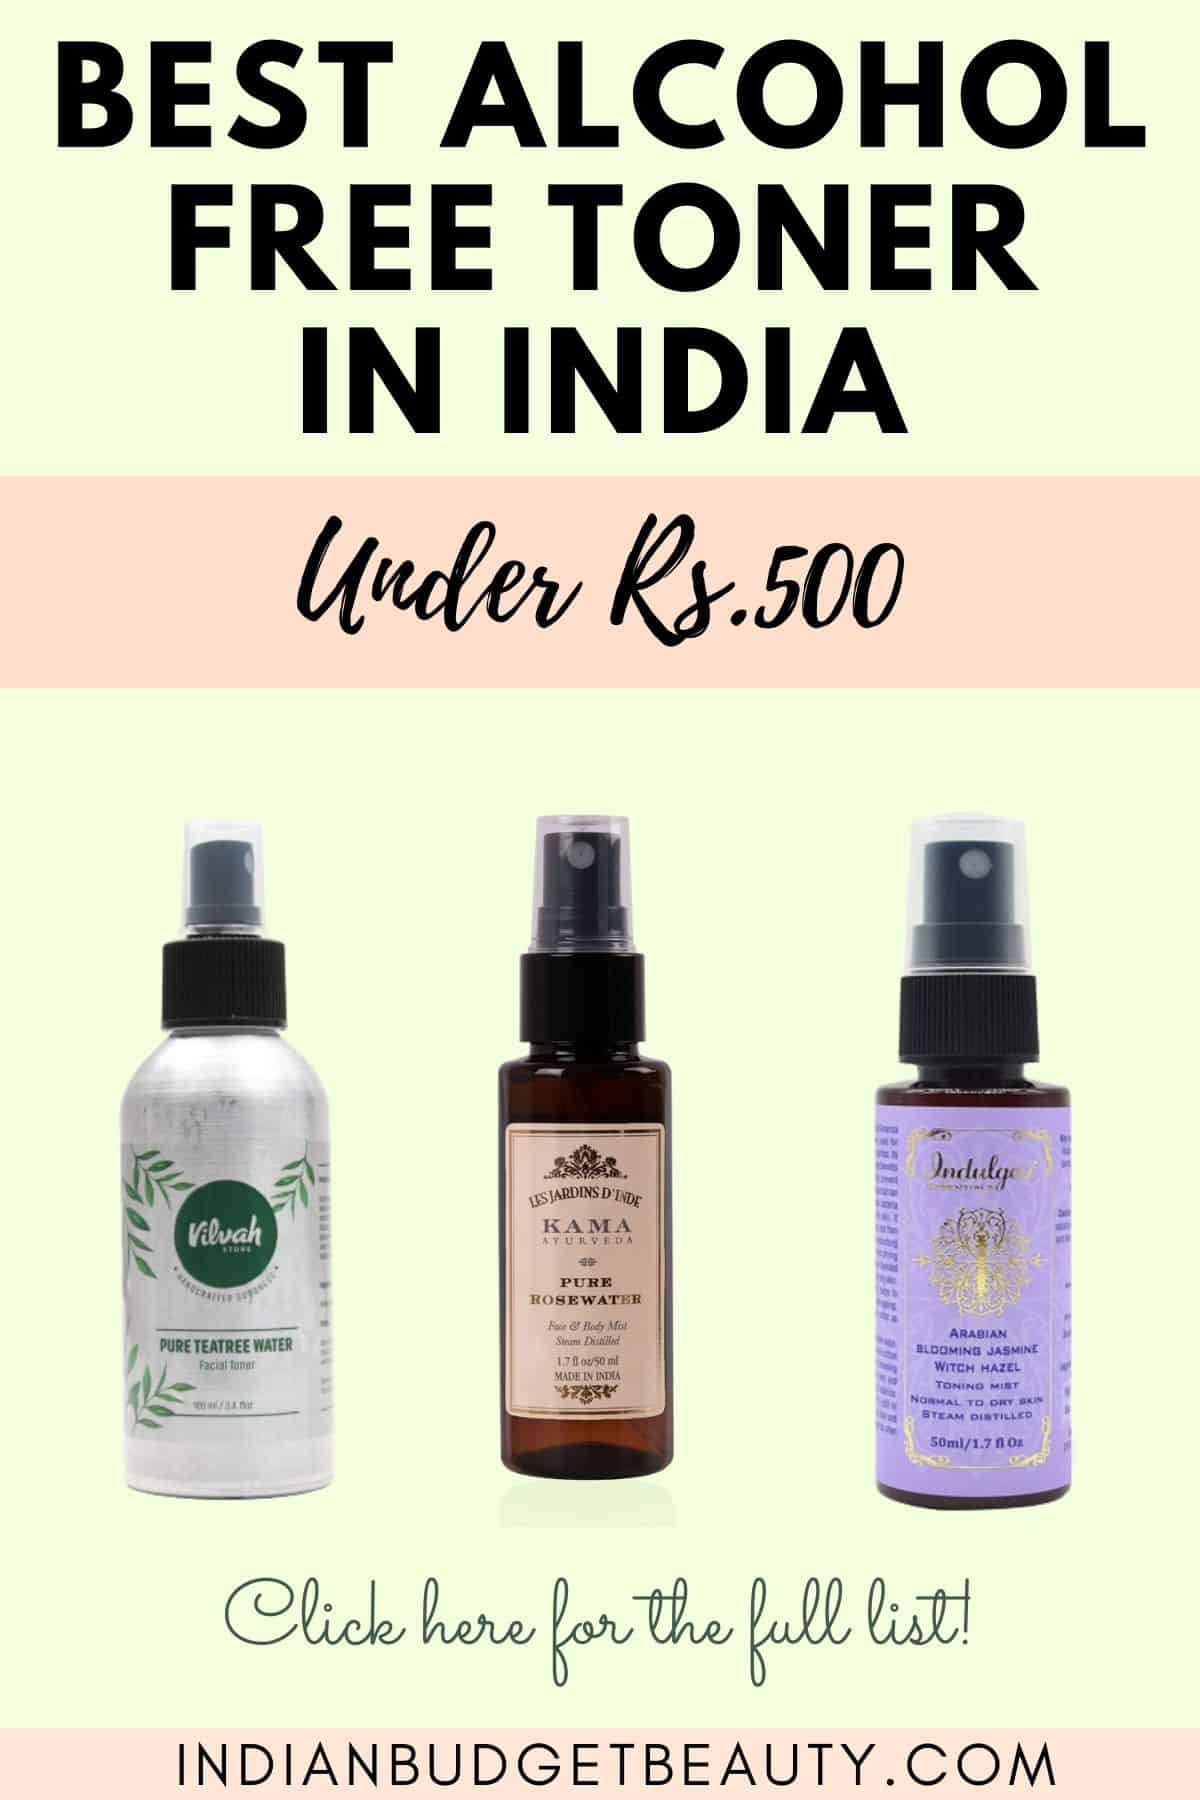 best alcohol free toner in india under Rs.500